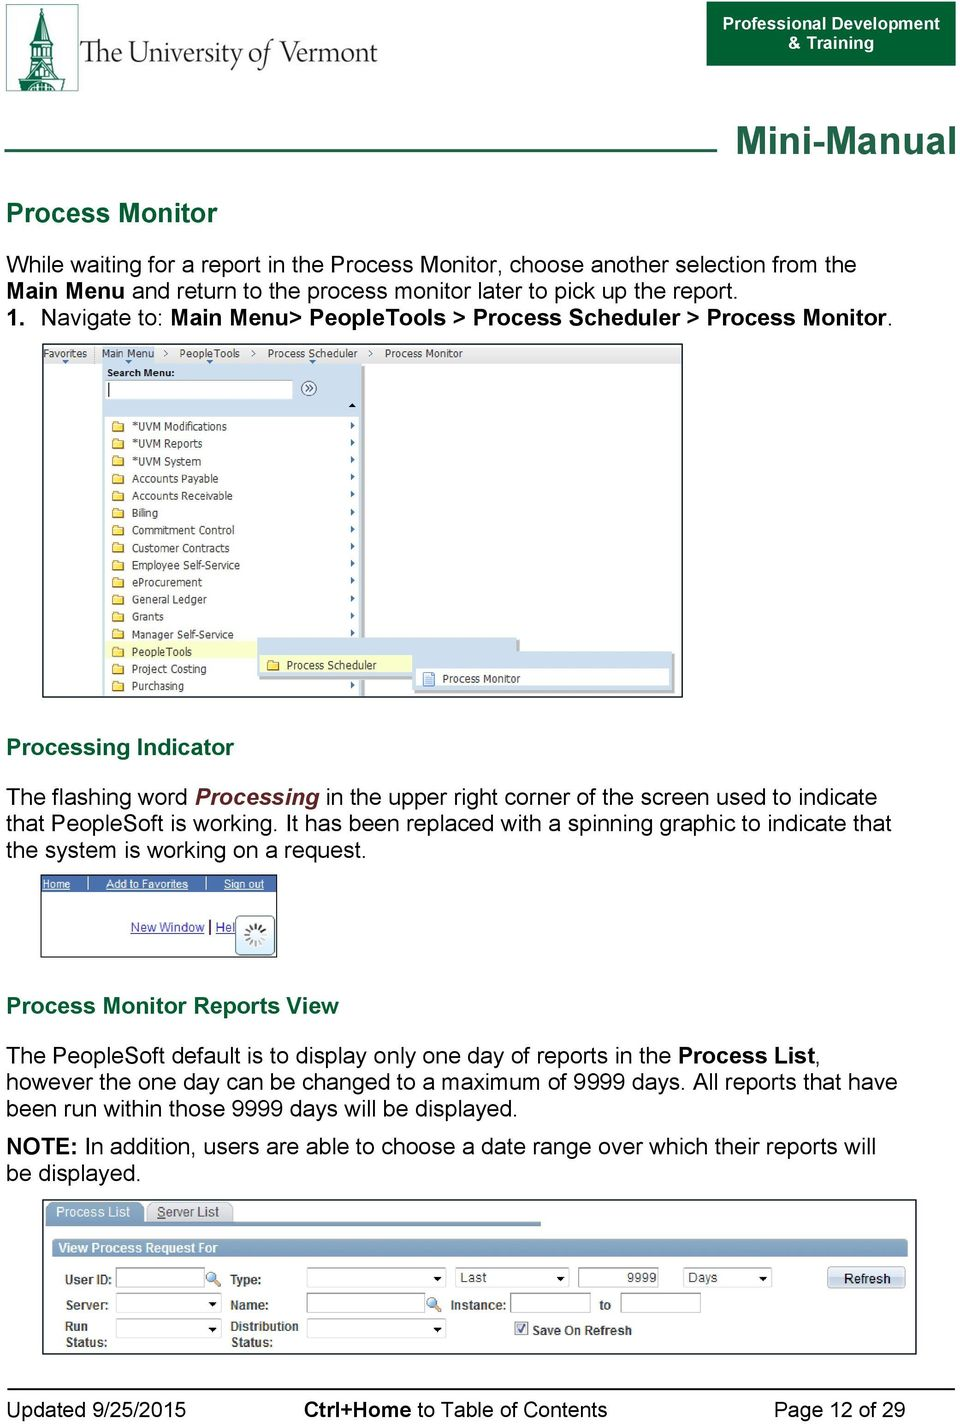 Processing Indicator The flashing word Processing in the upper right corner of the screen used to indicate that PeopleSoft is working.